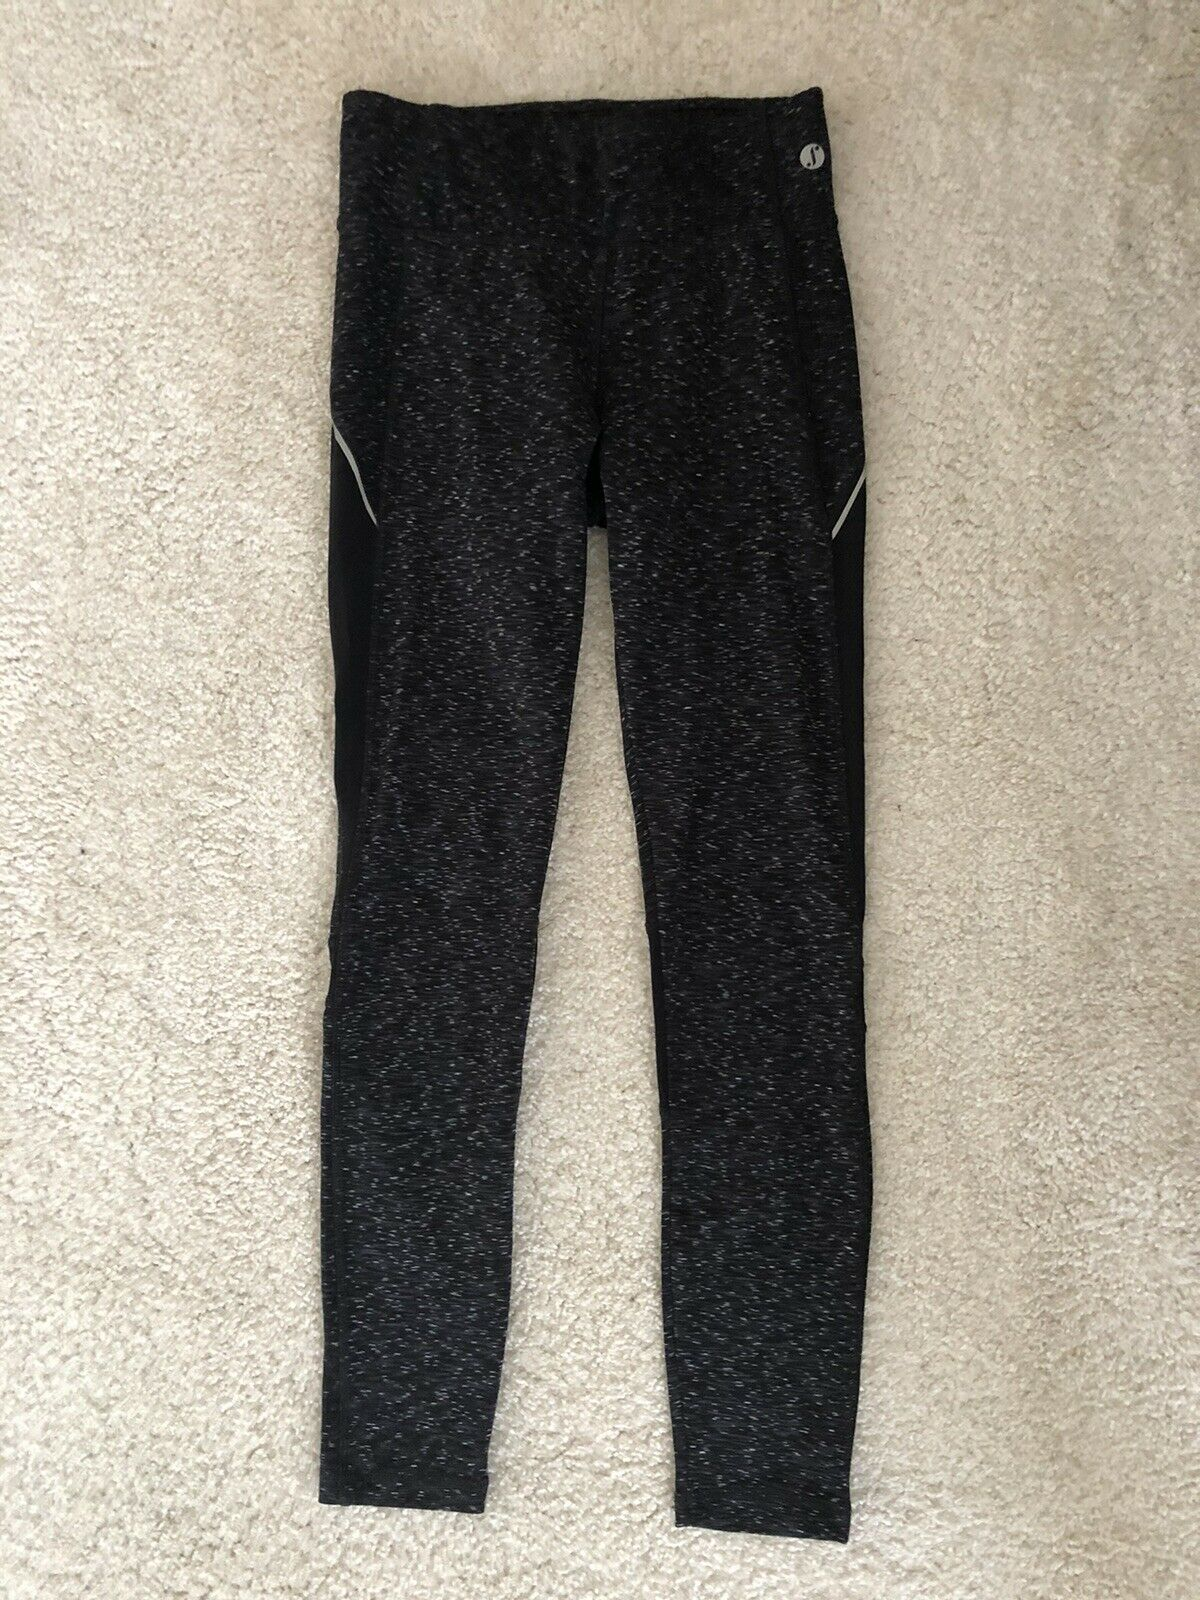 New Look Leggings. Womens. Size Small. Black, Grey And White Pattern.